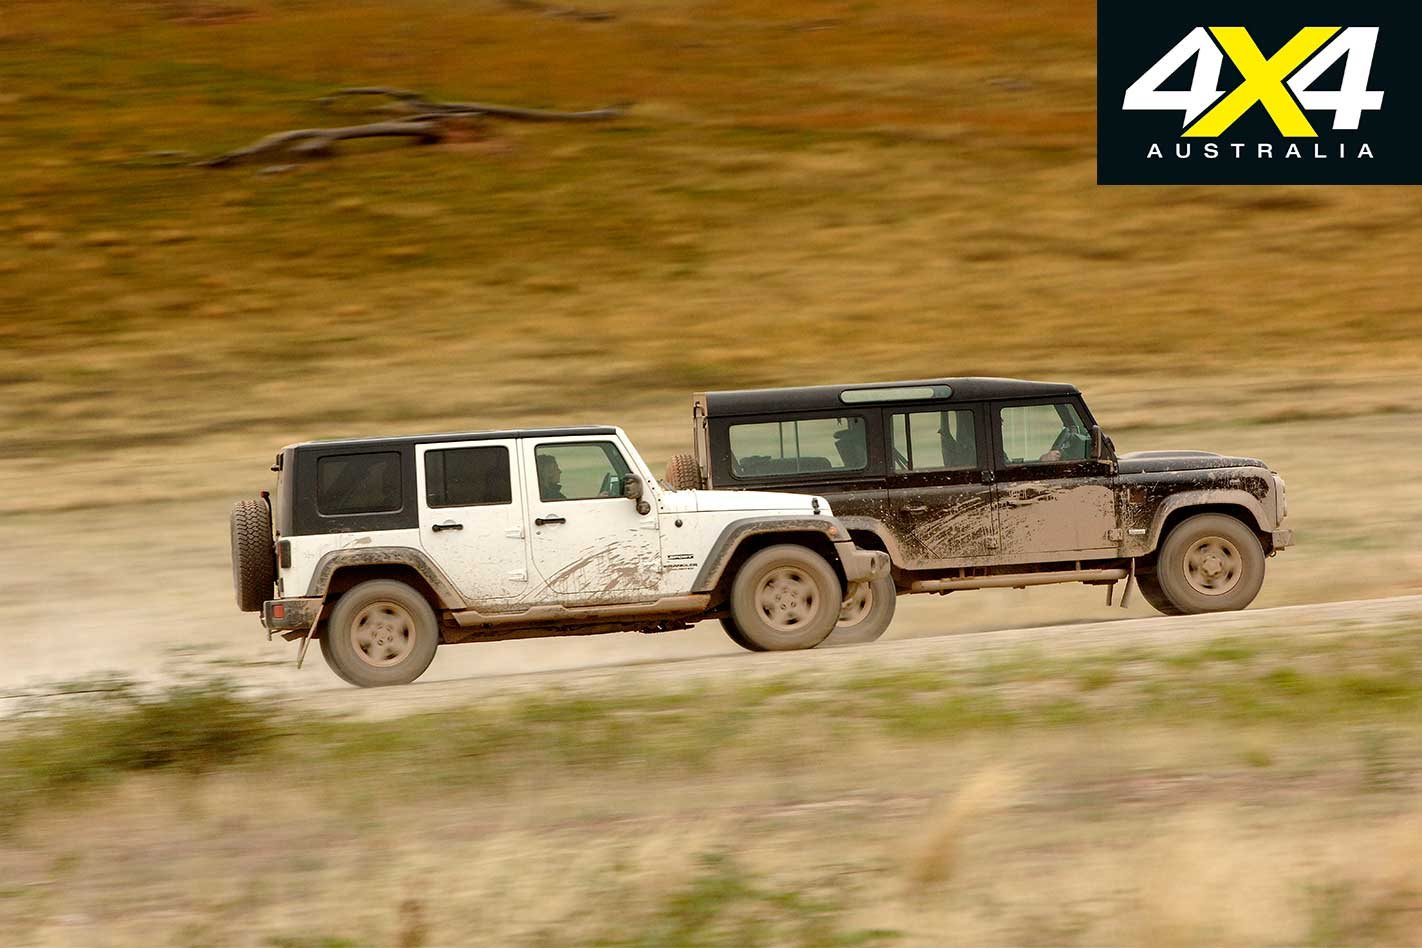 2009 Land Rover Defender Svx Vs Jeep Wrangler Unlimited 4x4